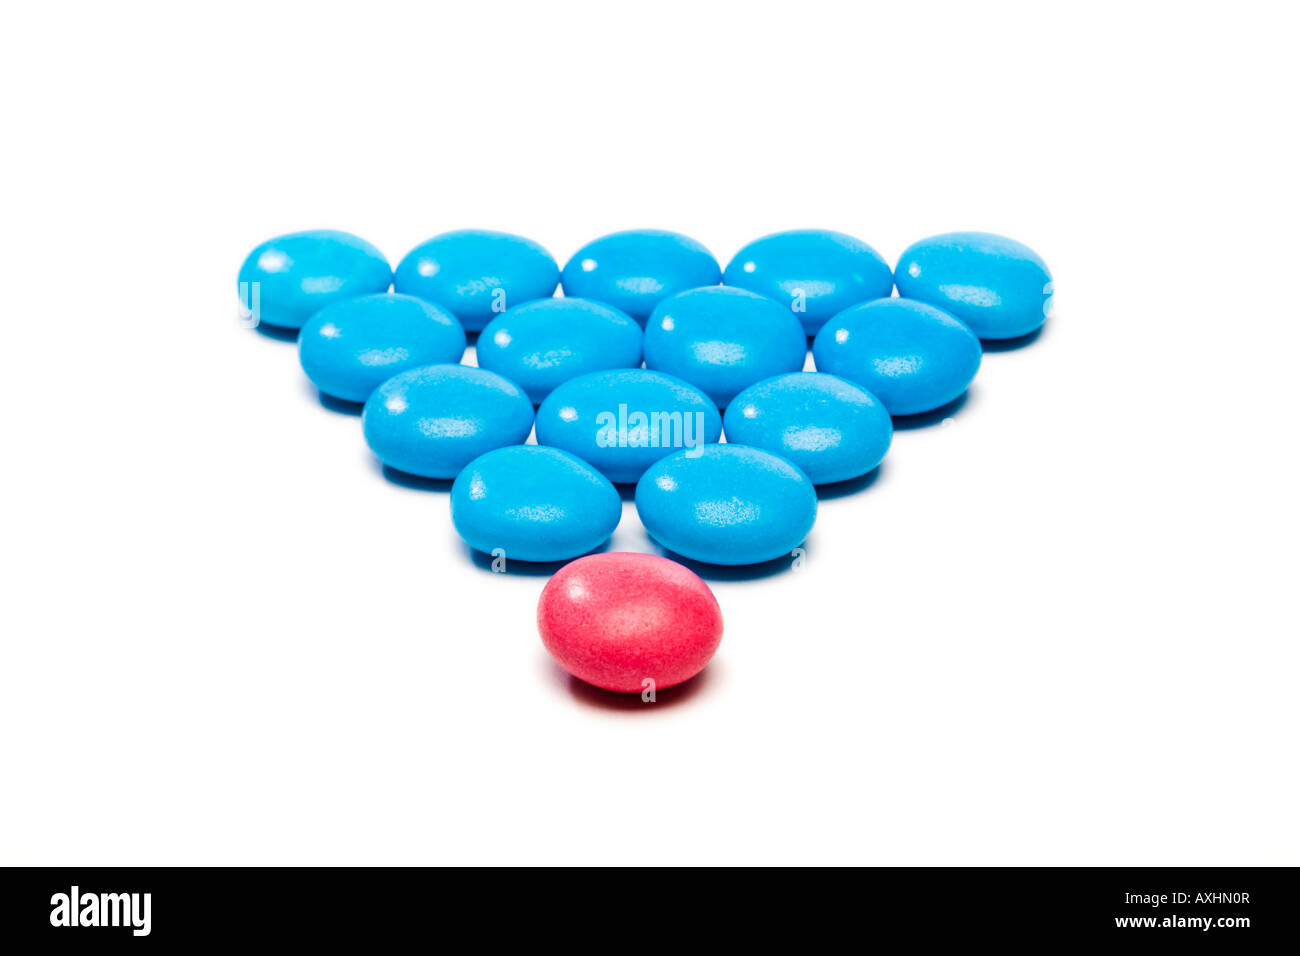 Coloured candy used to show the concept of leadership - Stock Image